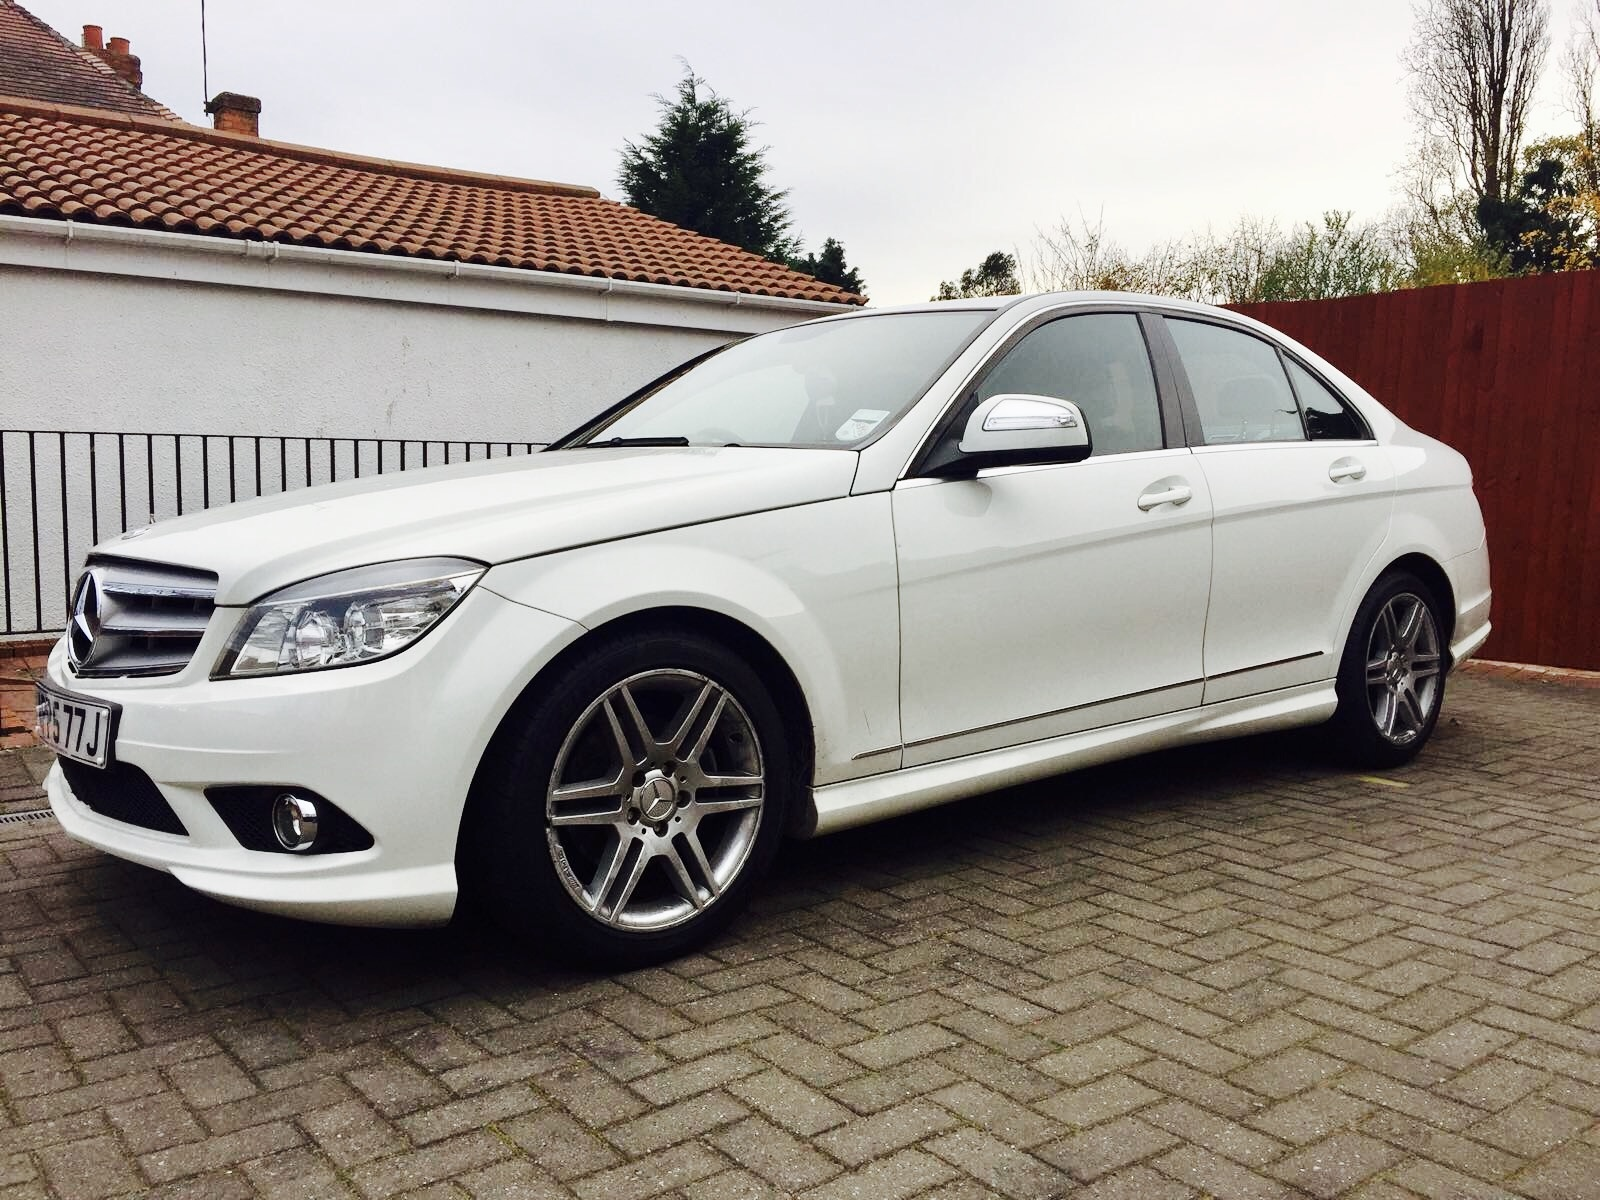 Mercedes benz c class questions sell my car cargurus for Sell mercedes benz